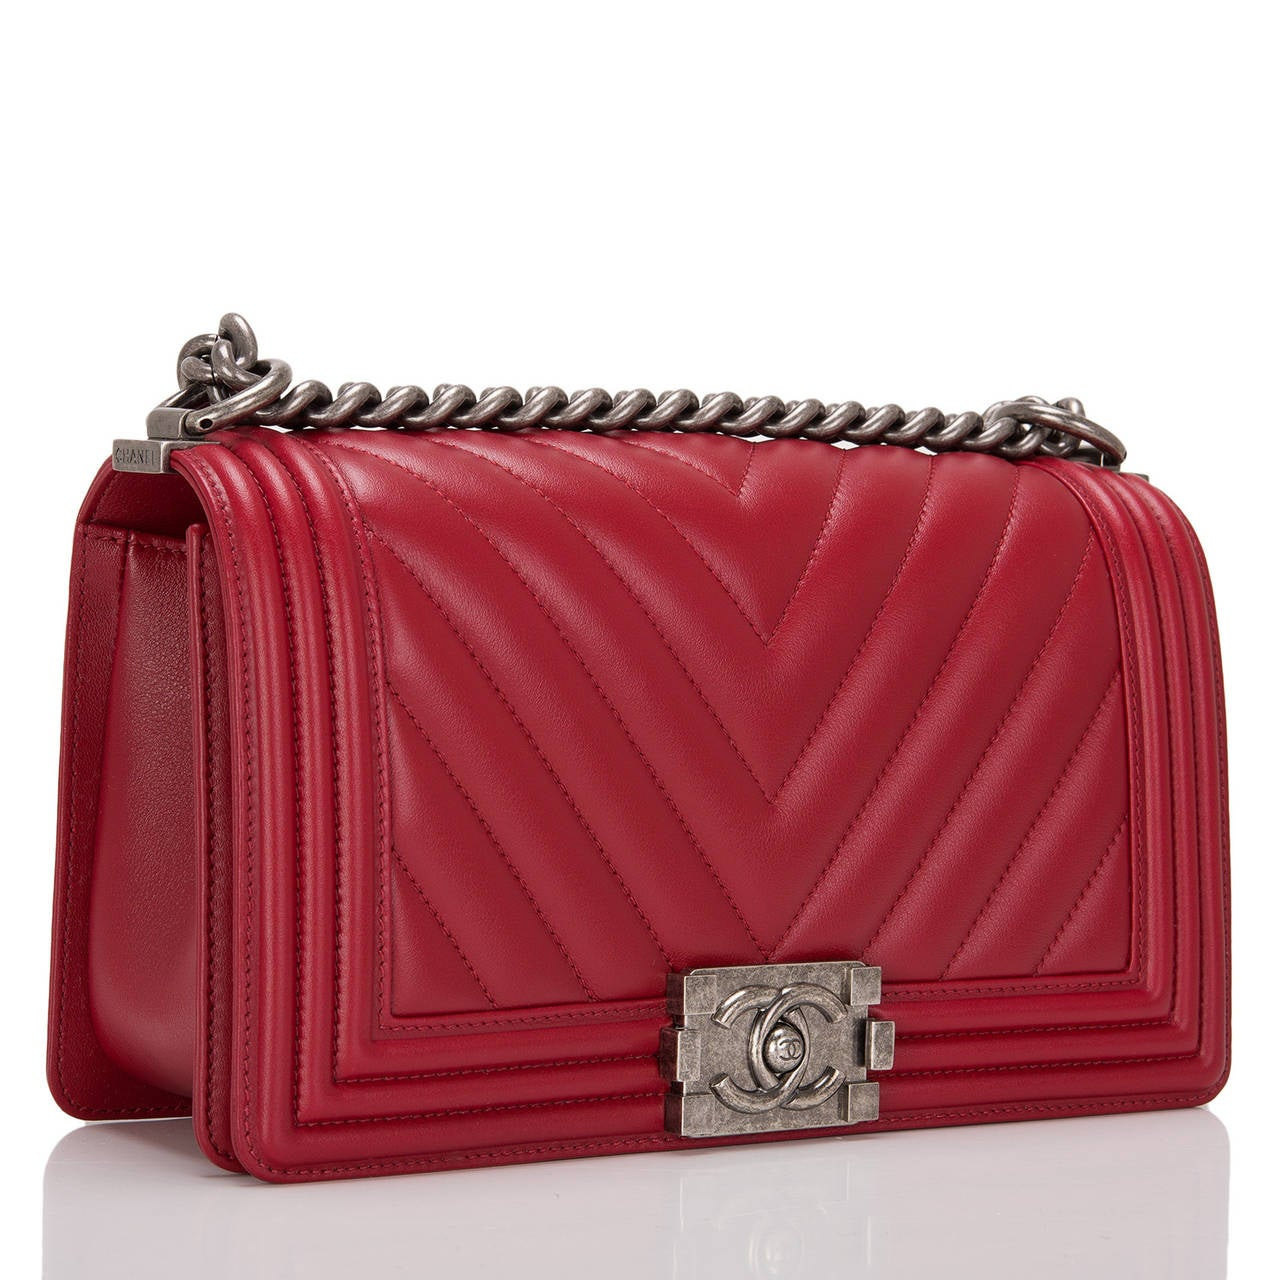 This Chanel red Chevron Medium Boy bag features beautiful red quilted chevron calfskin and aged ruthenium hardware. This Chanel bag is in the classic Boy style with a full front flap with the Boy signature CC push lock closure detail and aged